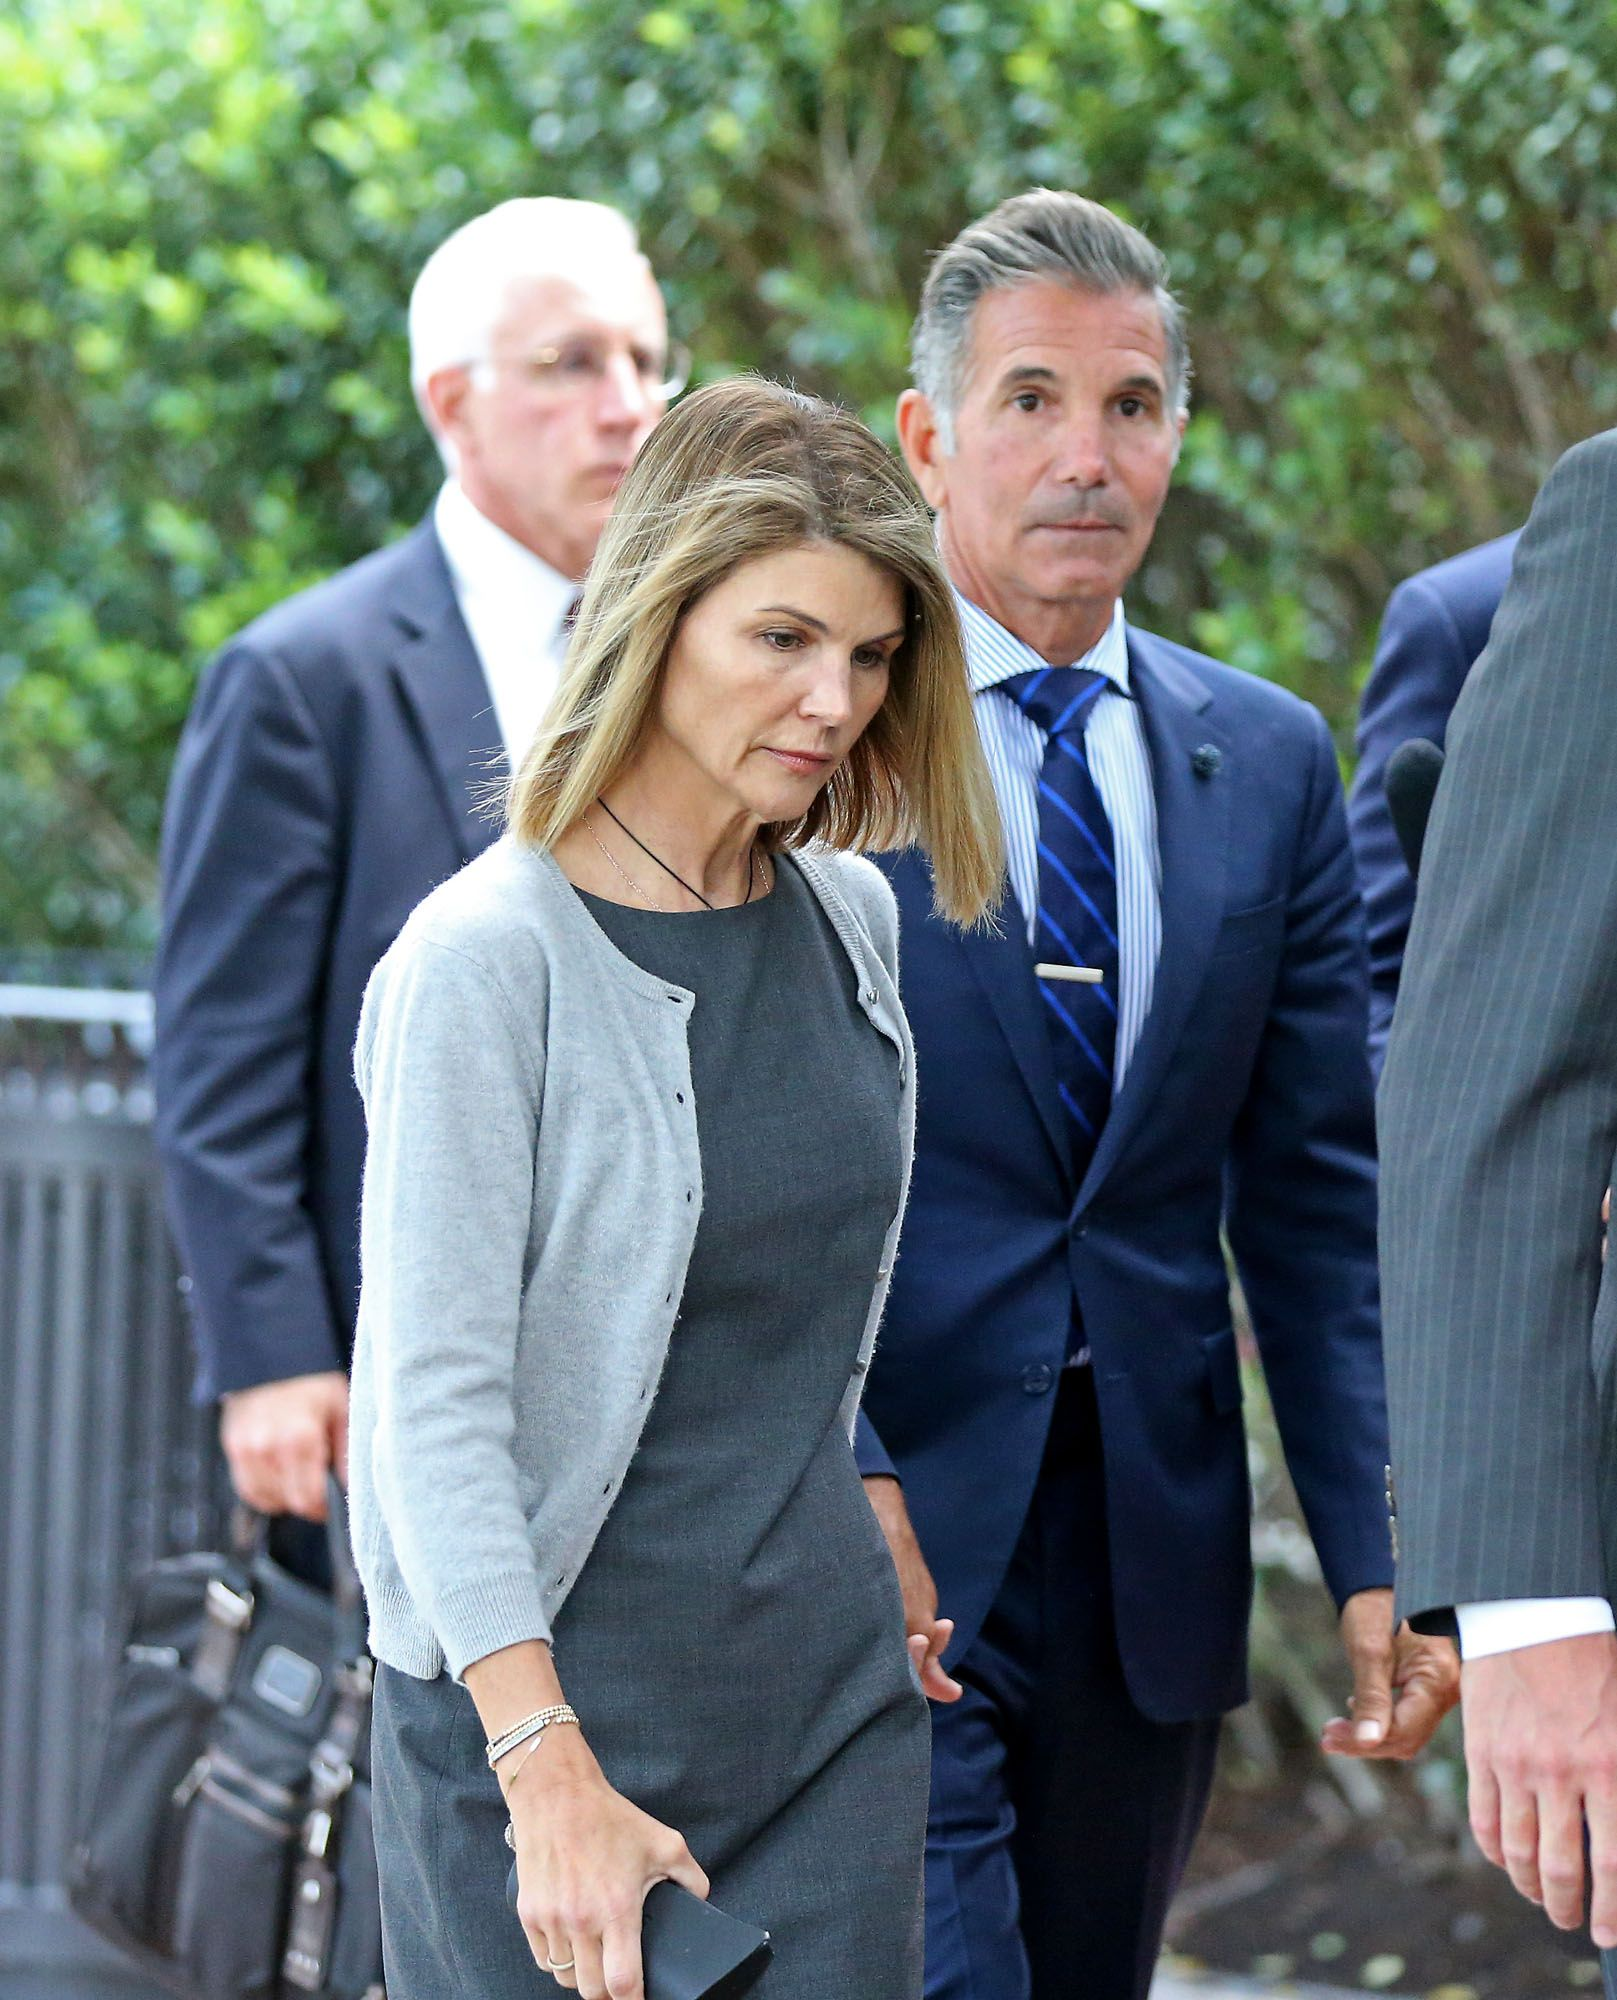 Lori Loughlin and her husband Mossimo Giannulli at the Moakley Federal Courthouse in August 2019 in Boston | Source: Getty Images